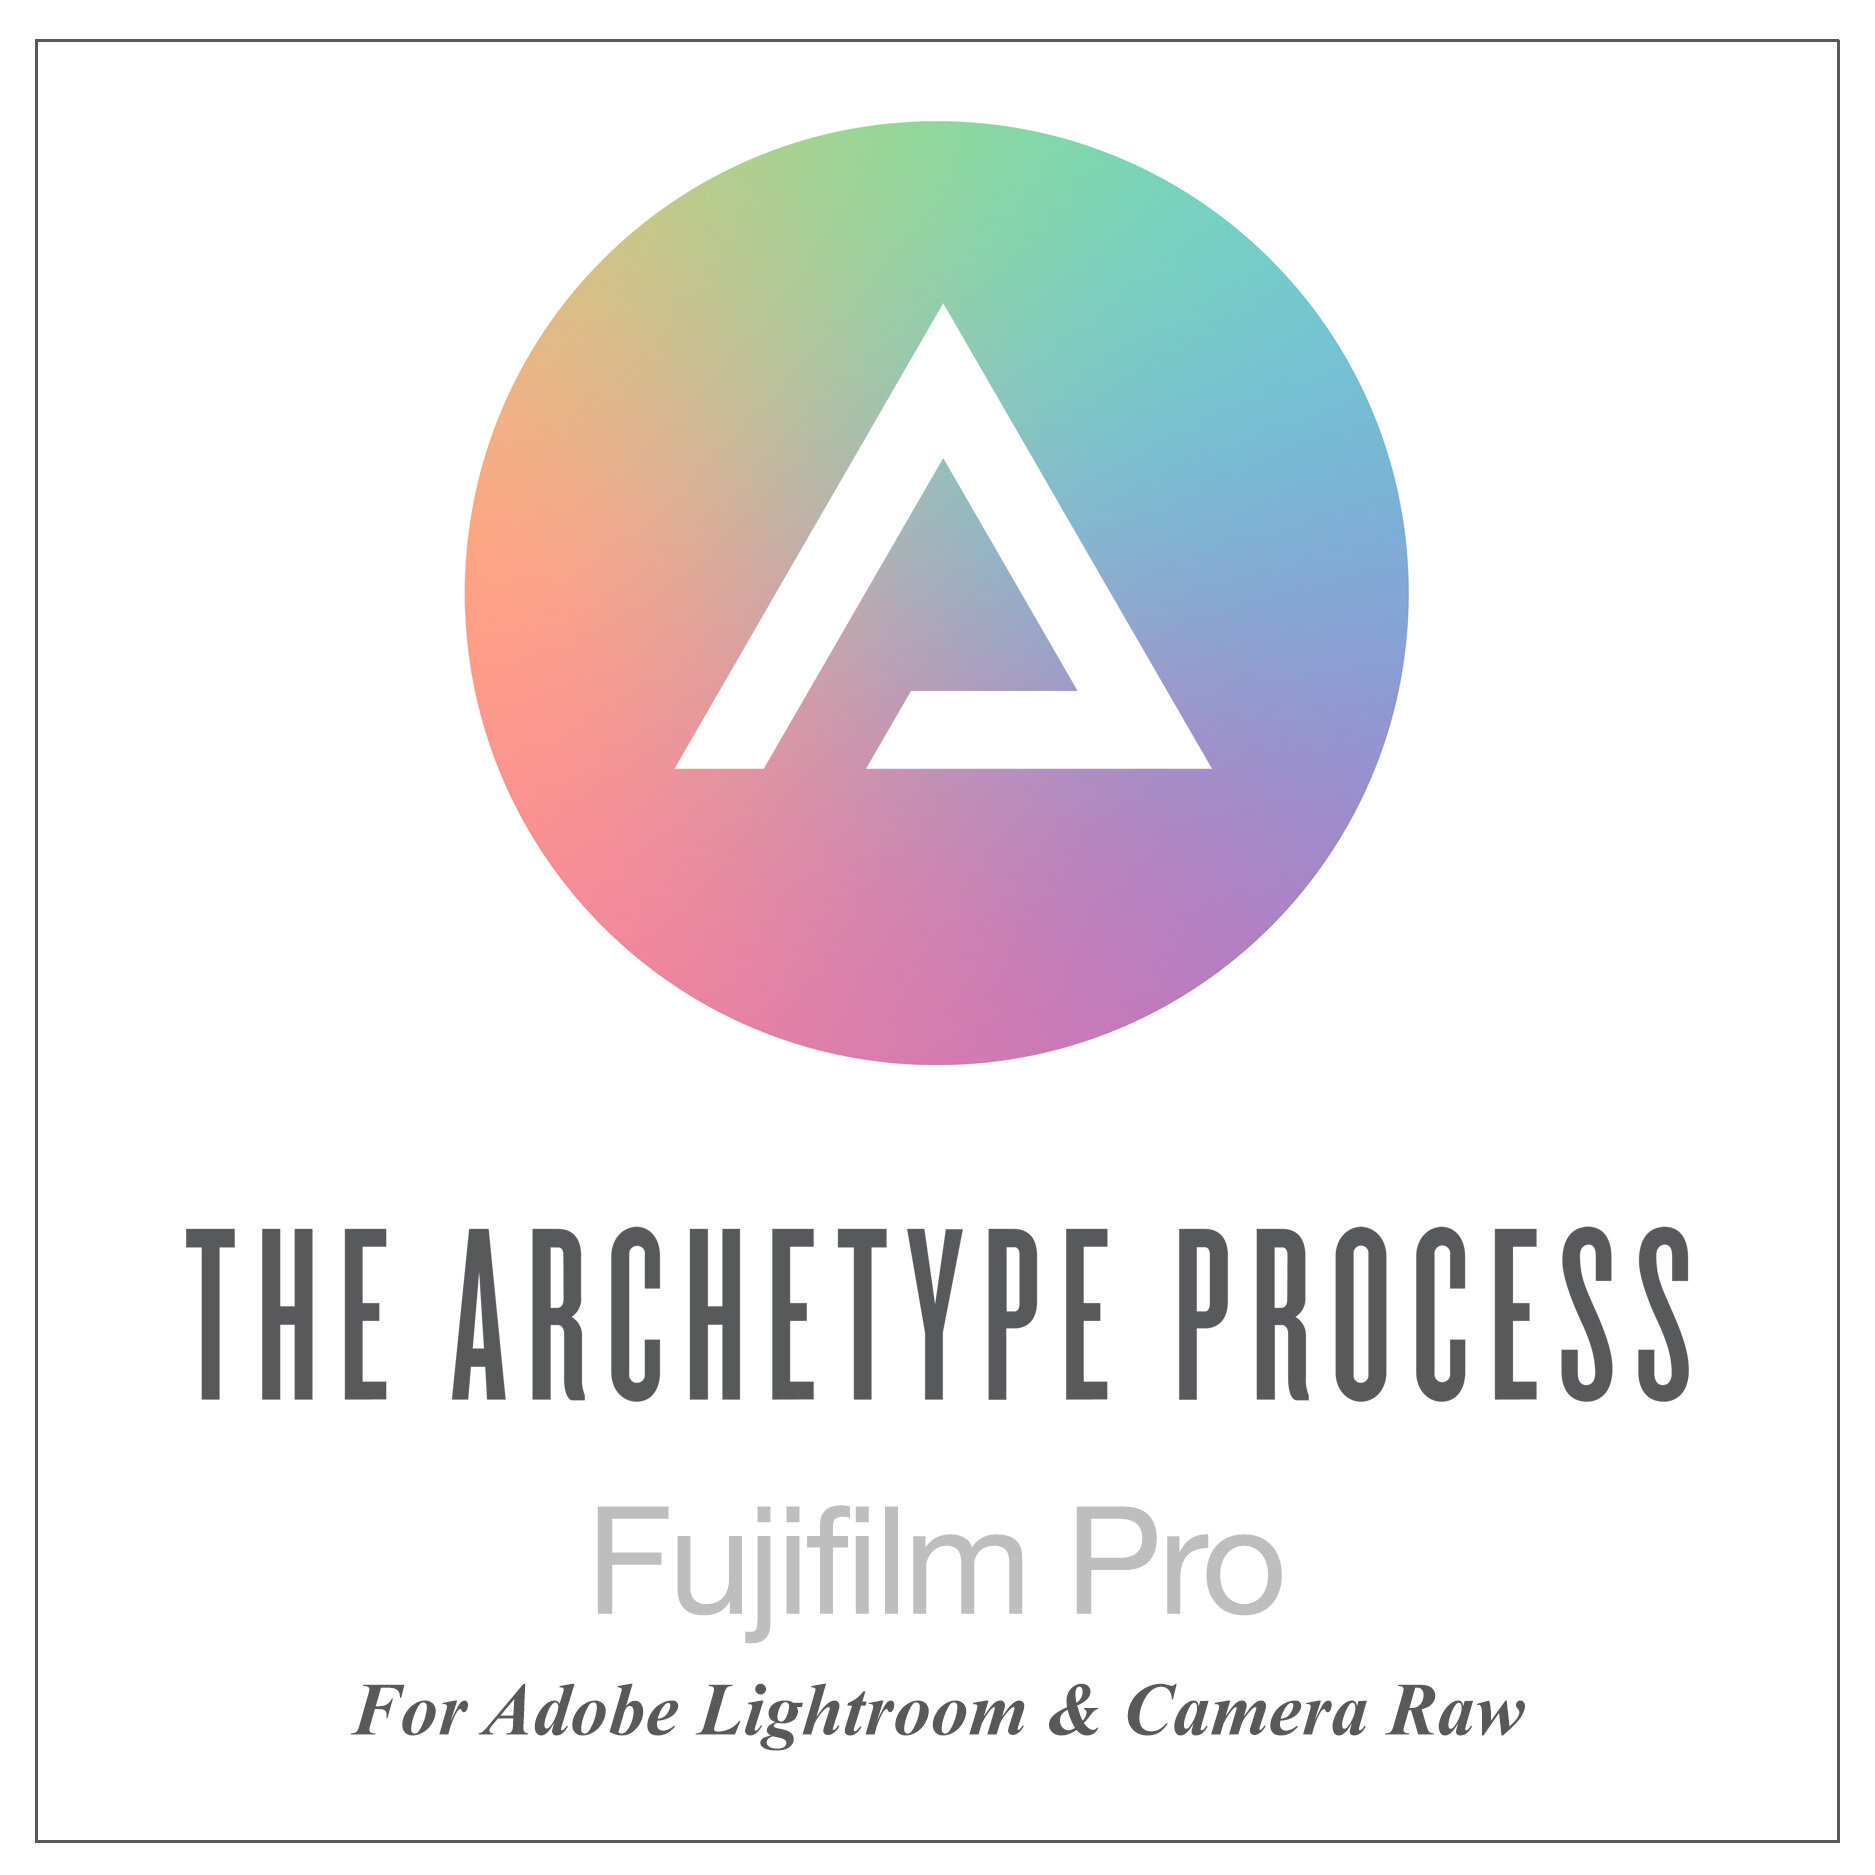 The Archetype Process Fujifilm Pro Pack for Adobe Lightroom and Camera Raw